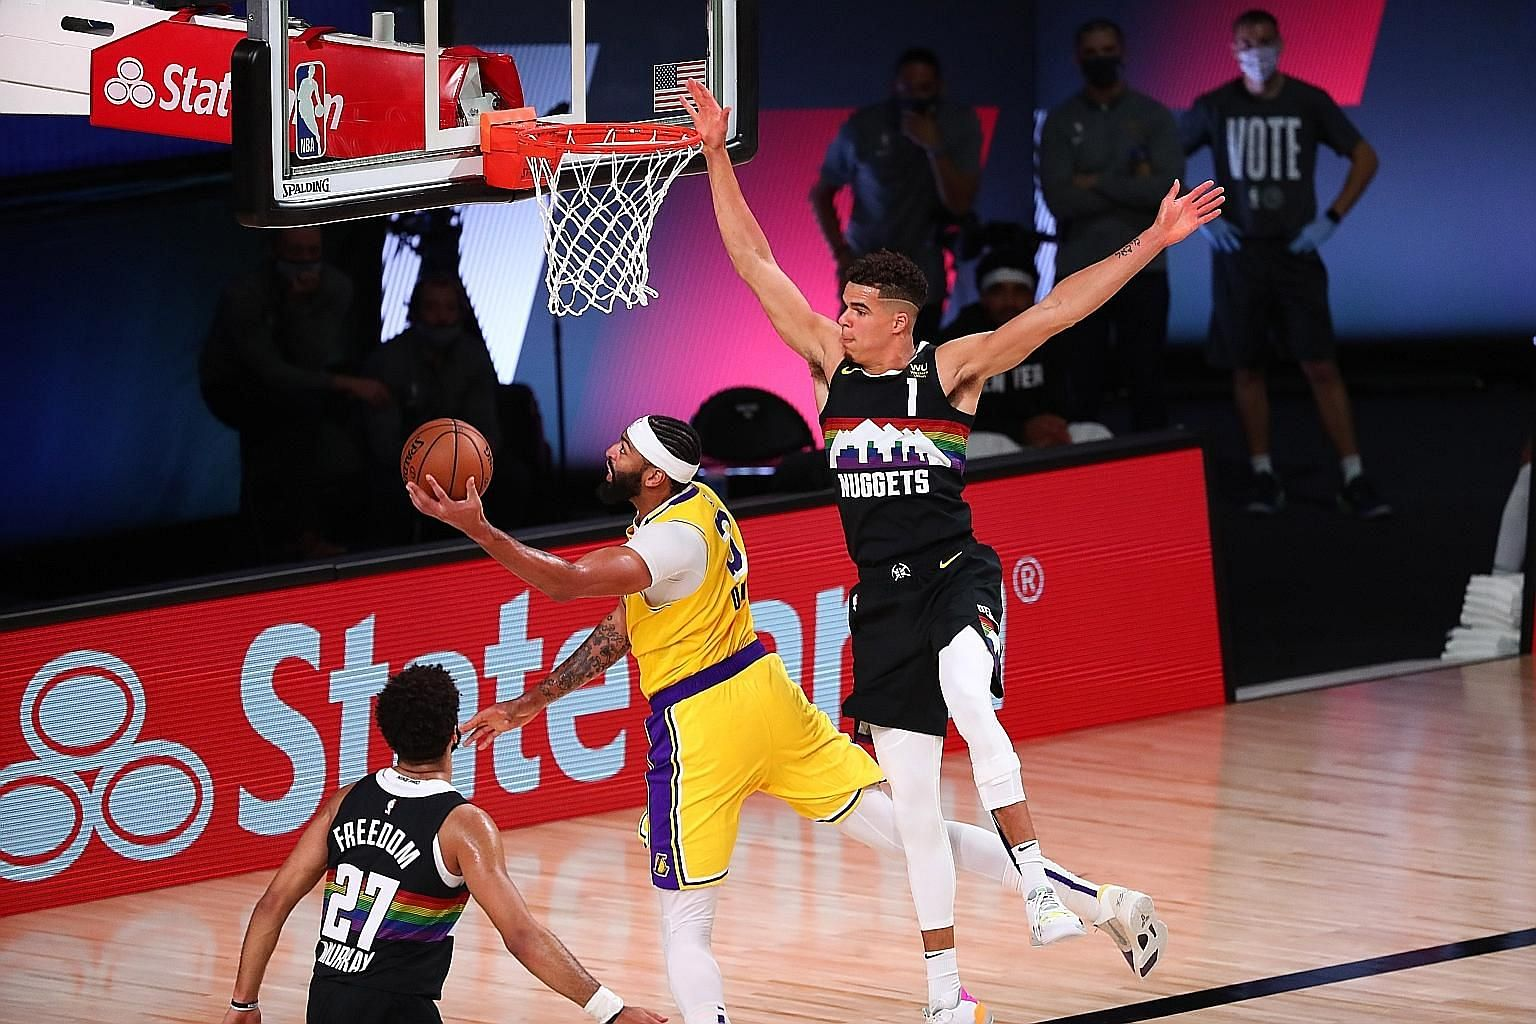 Los Angeles Lakers' Anthony Davis shooting past Denver Nuggets' Michael Porter Jr during Game 4 of the NBA's Western Conference Finals series at the AdventHealth Arena. Davis combined with LeBron James for 60 points.